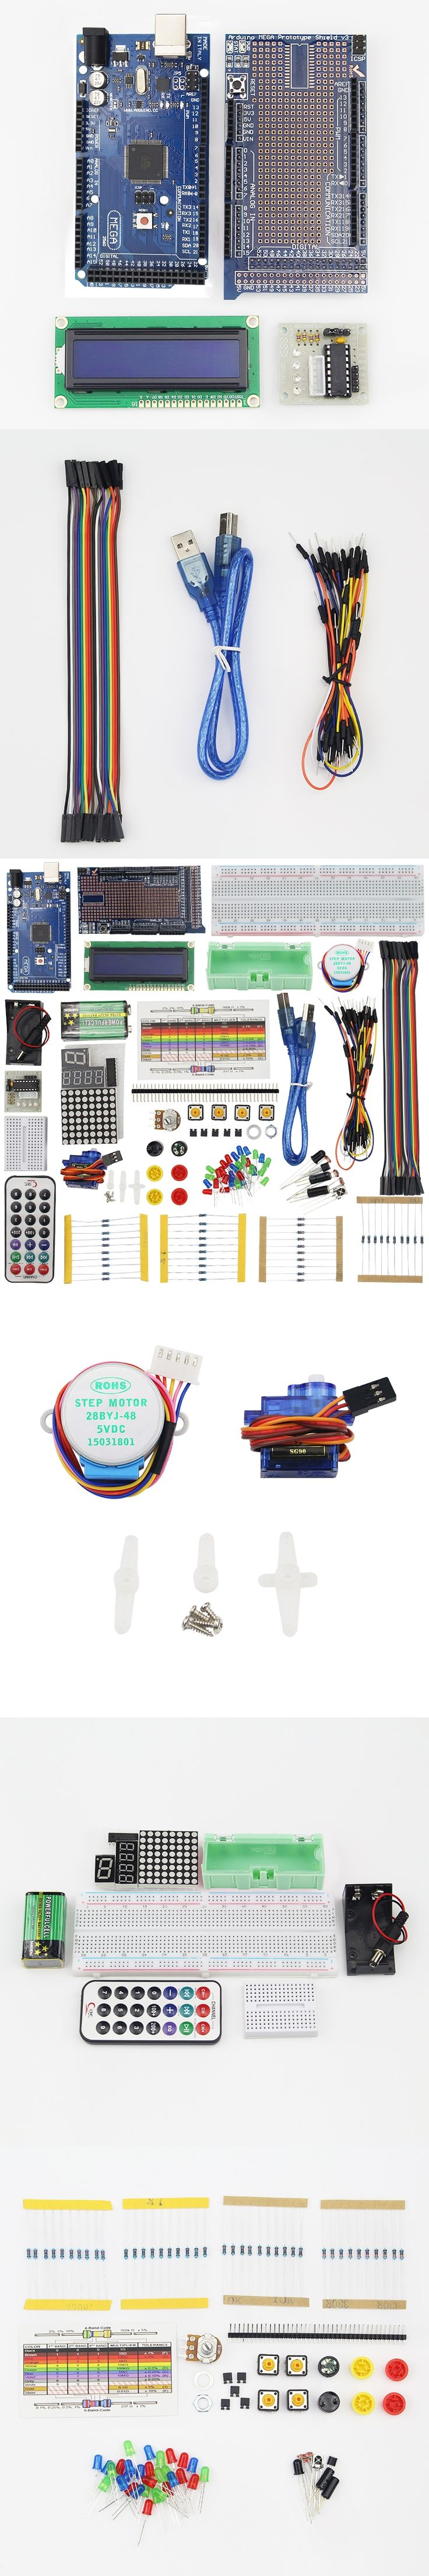 Raspberry Pi 3 for MEGA 2560 Starter Kit for ARDUINO LCD Servo Motor Sensor Module Jumper Wire Project Learning AVR MCU Learner